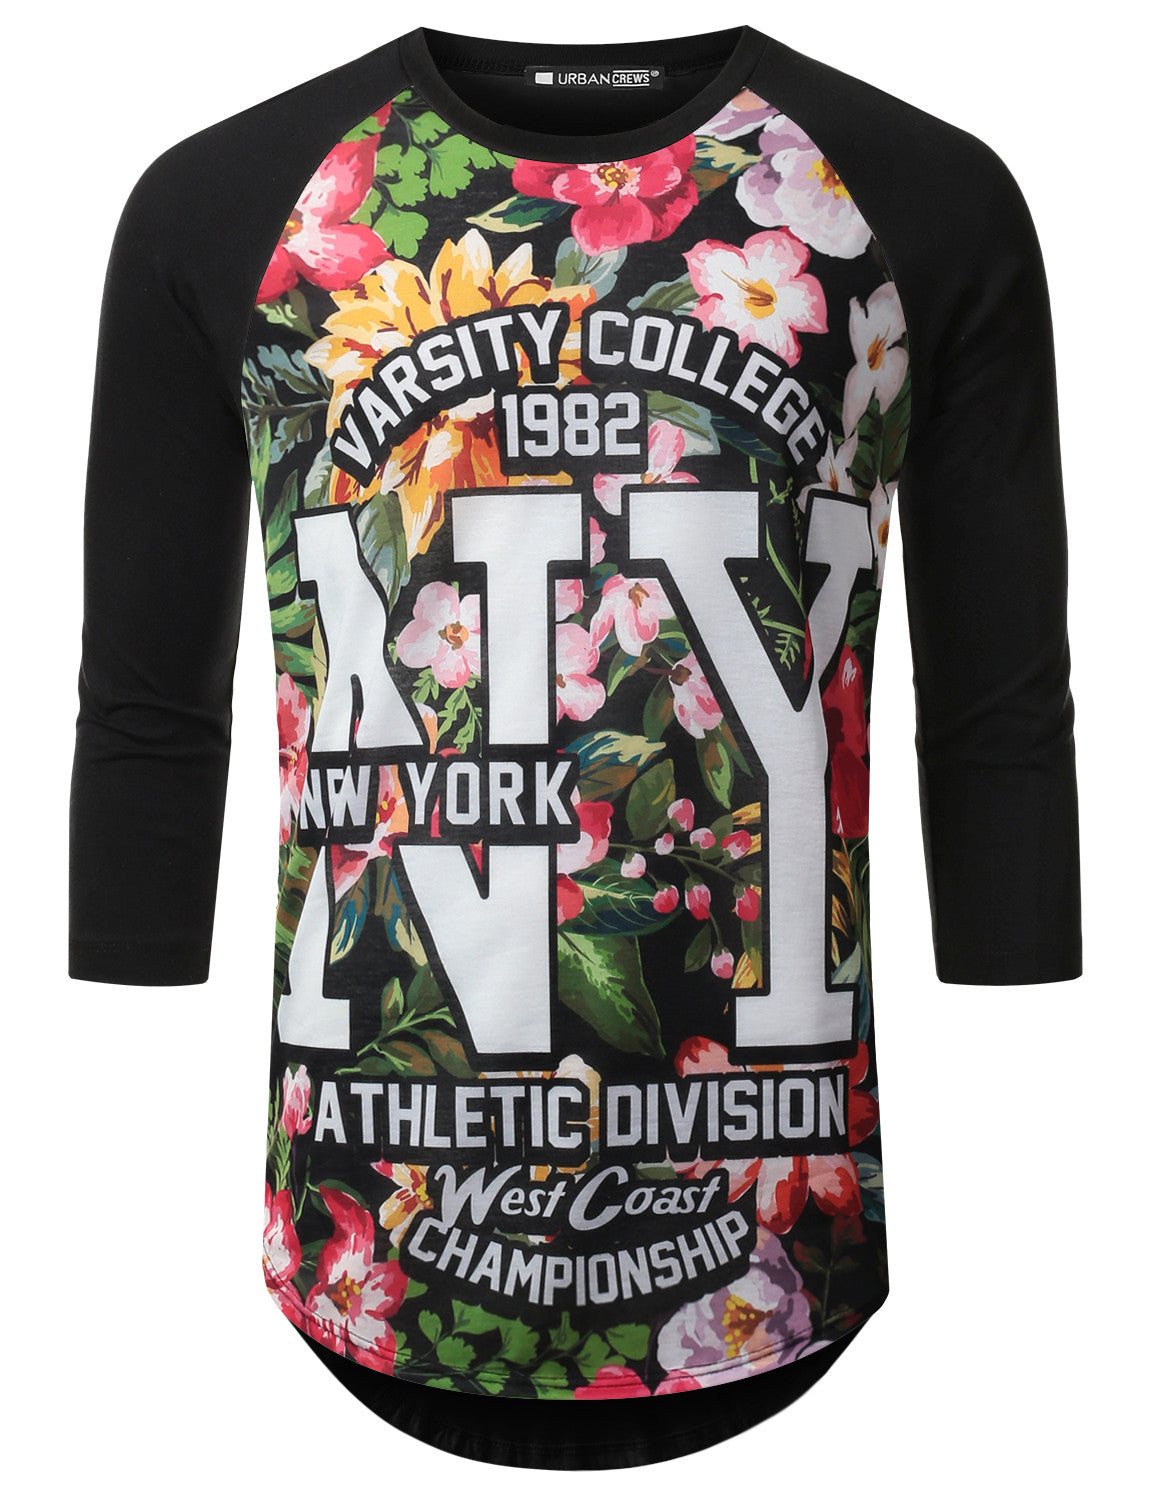 BLACK NewYork Floral Raglan Baseball Shirt - URBANCREWS